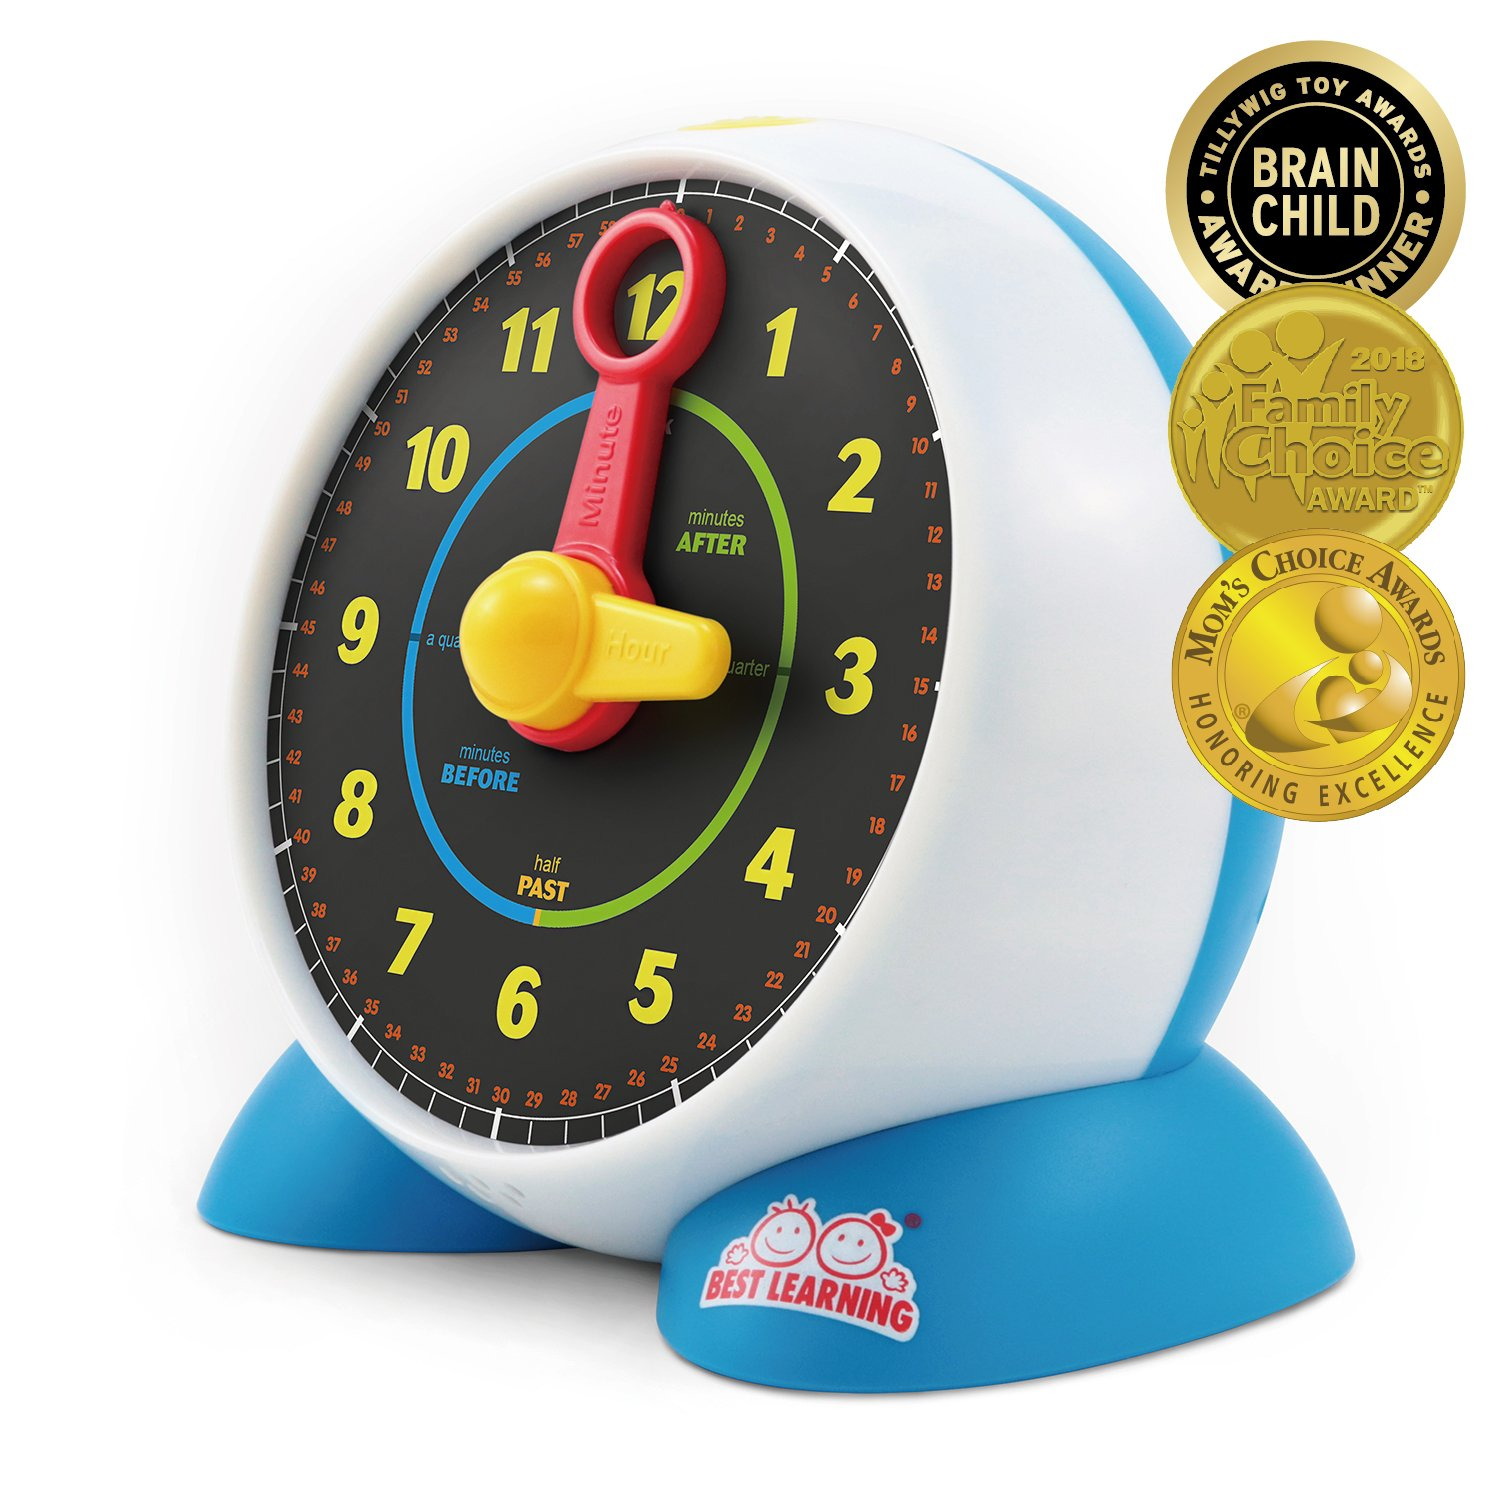 BEST LEARNING Learning Clock - Educational Talking Learn to Tell Time Light-Up Toy with Quiz and Sleep Mode for Toddlers Kids